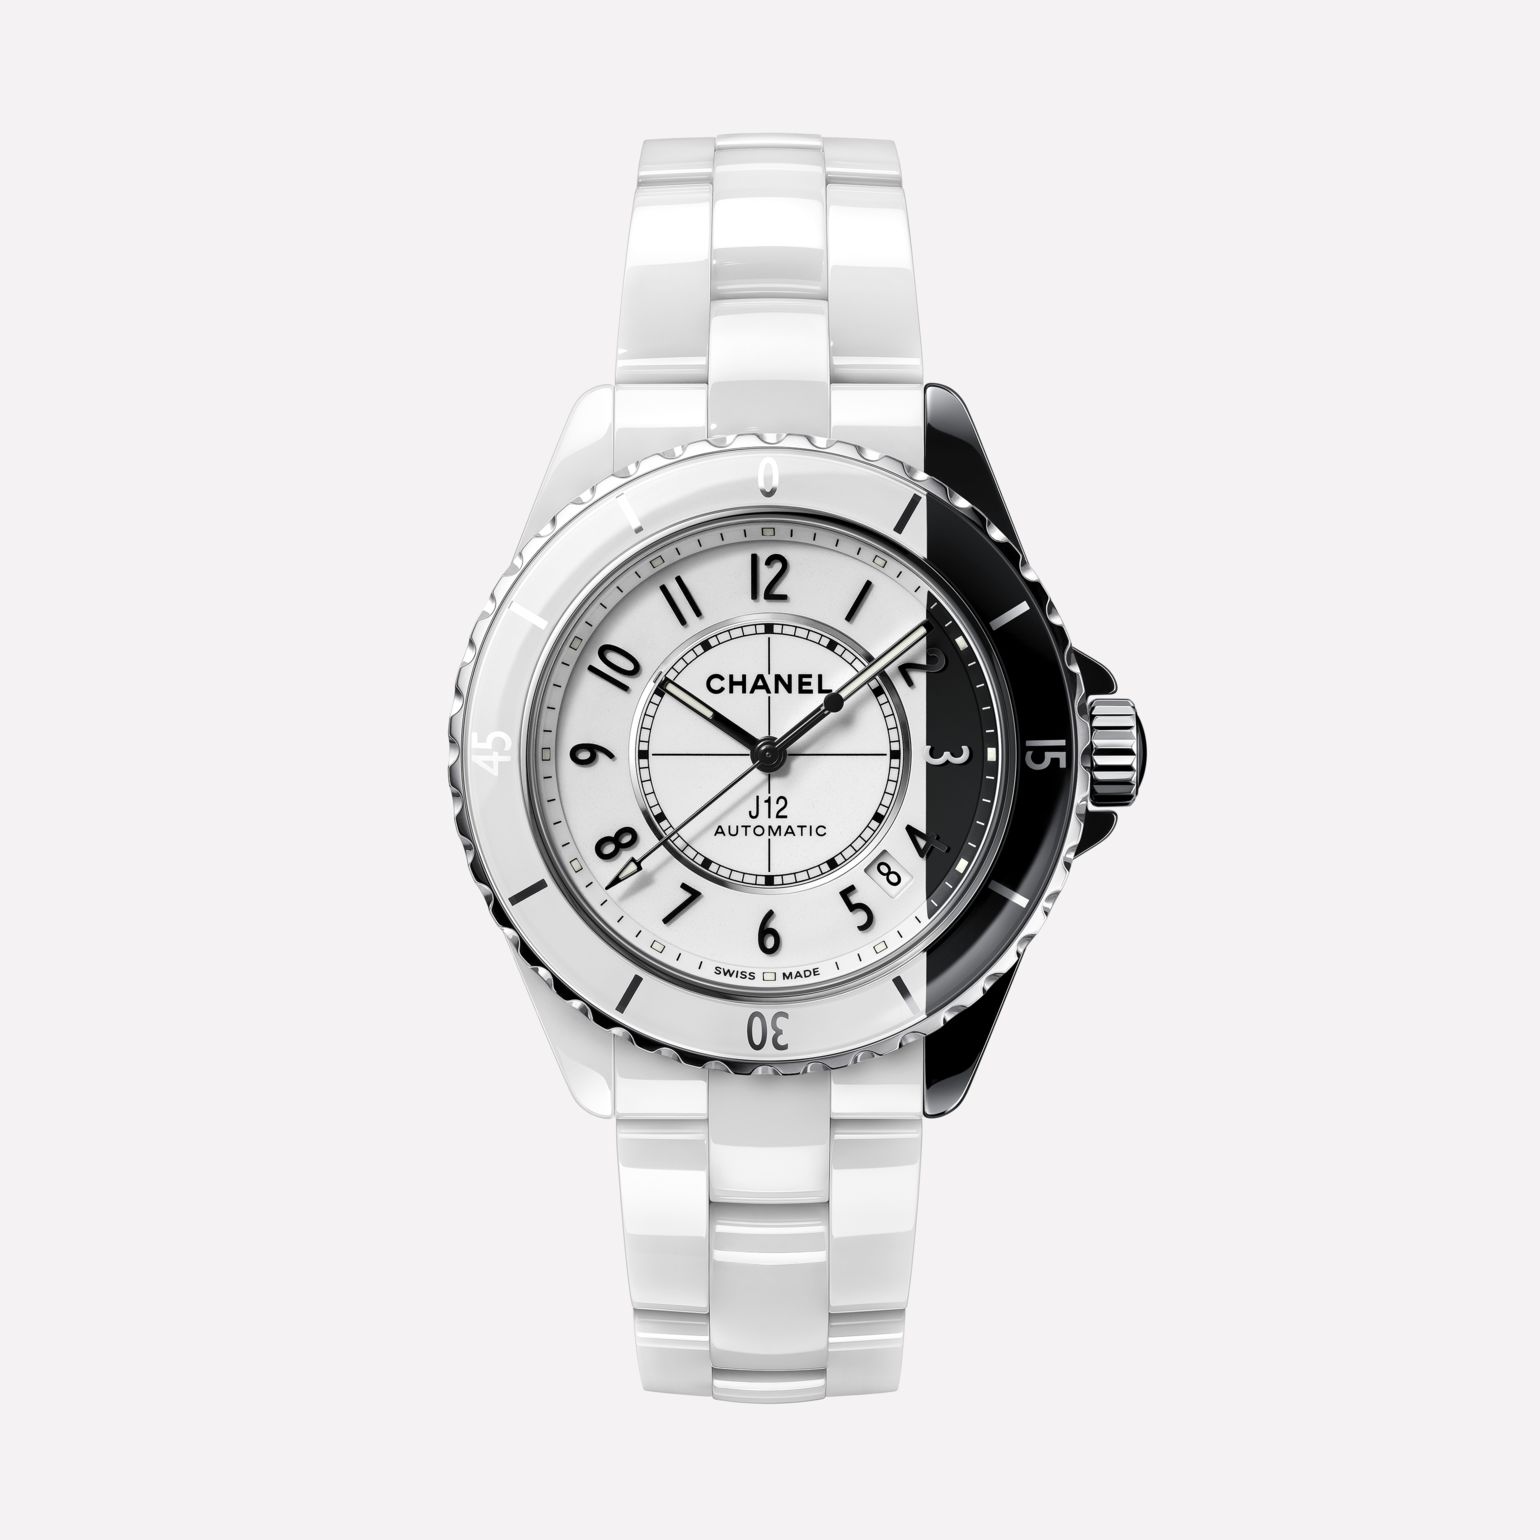 J12 Paradoxe Watch Caliber 12.1, 38 mm White and black highly resistant ceramic and steel